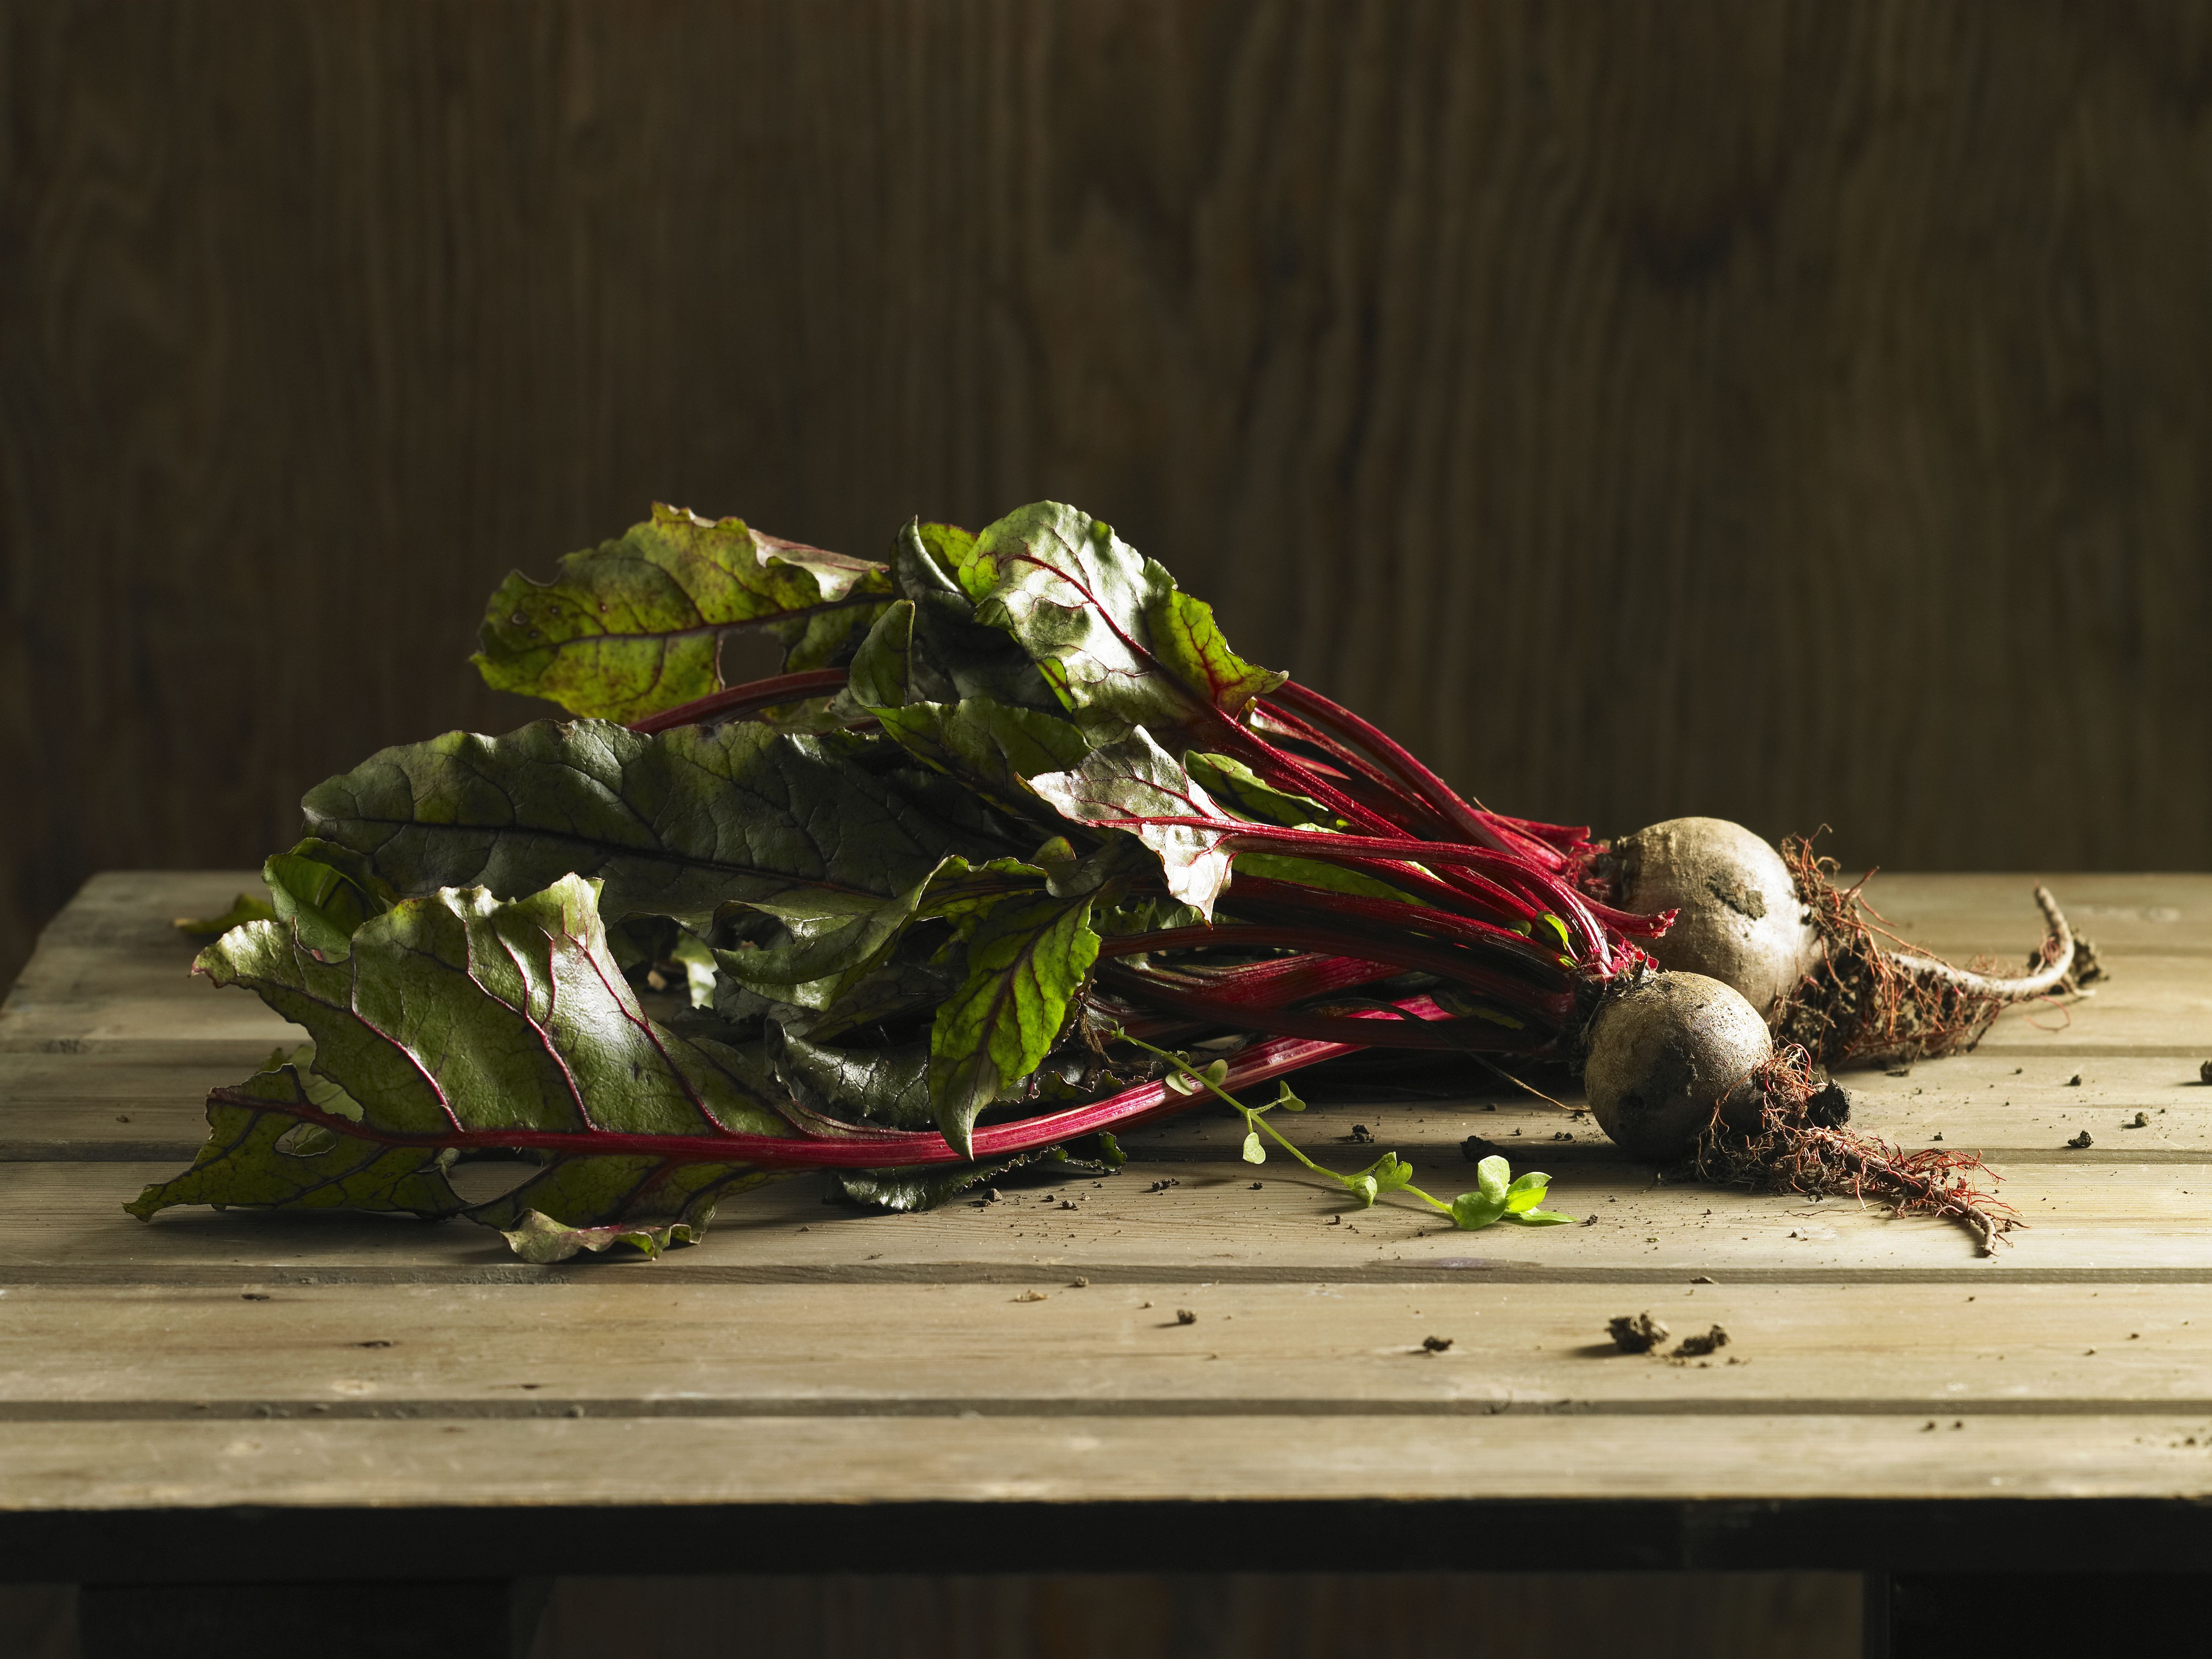 Beets With Their Greens Attached